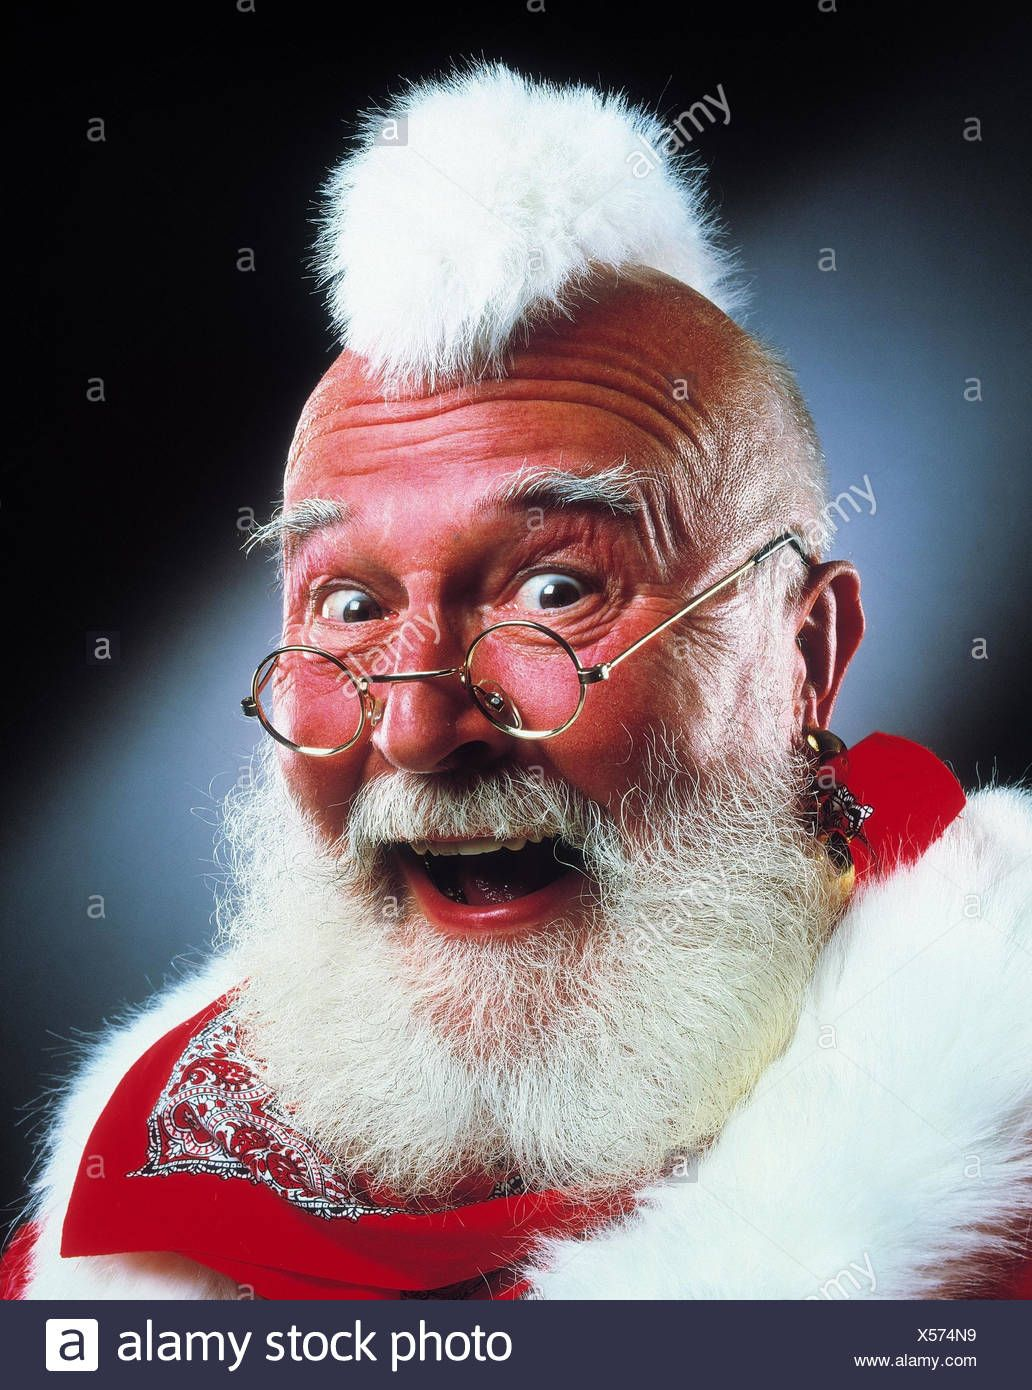 Santa Claus Punk Irokesenschnitt Facial Play Portrait Santa Punk Irokesenhaarschnitt Hairstyle Glasses Modern Unusually Fun Papai Noel Noel Papai